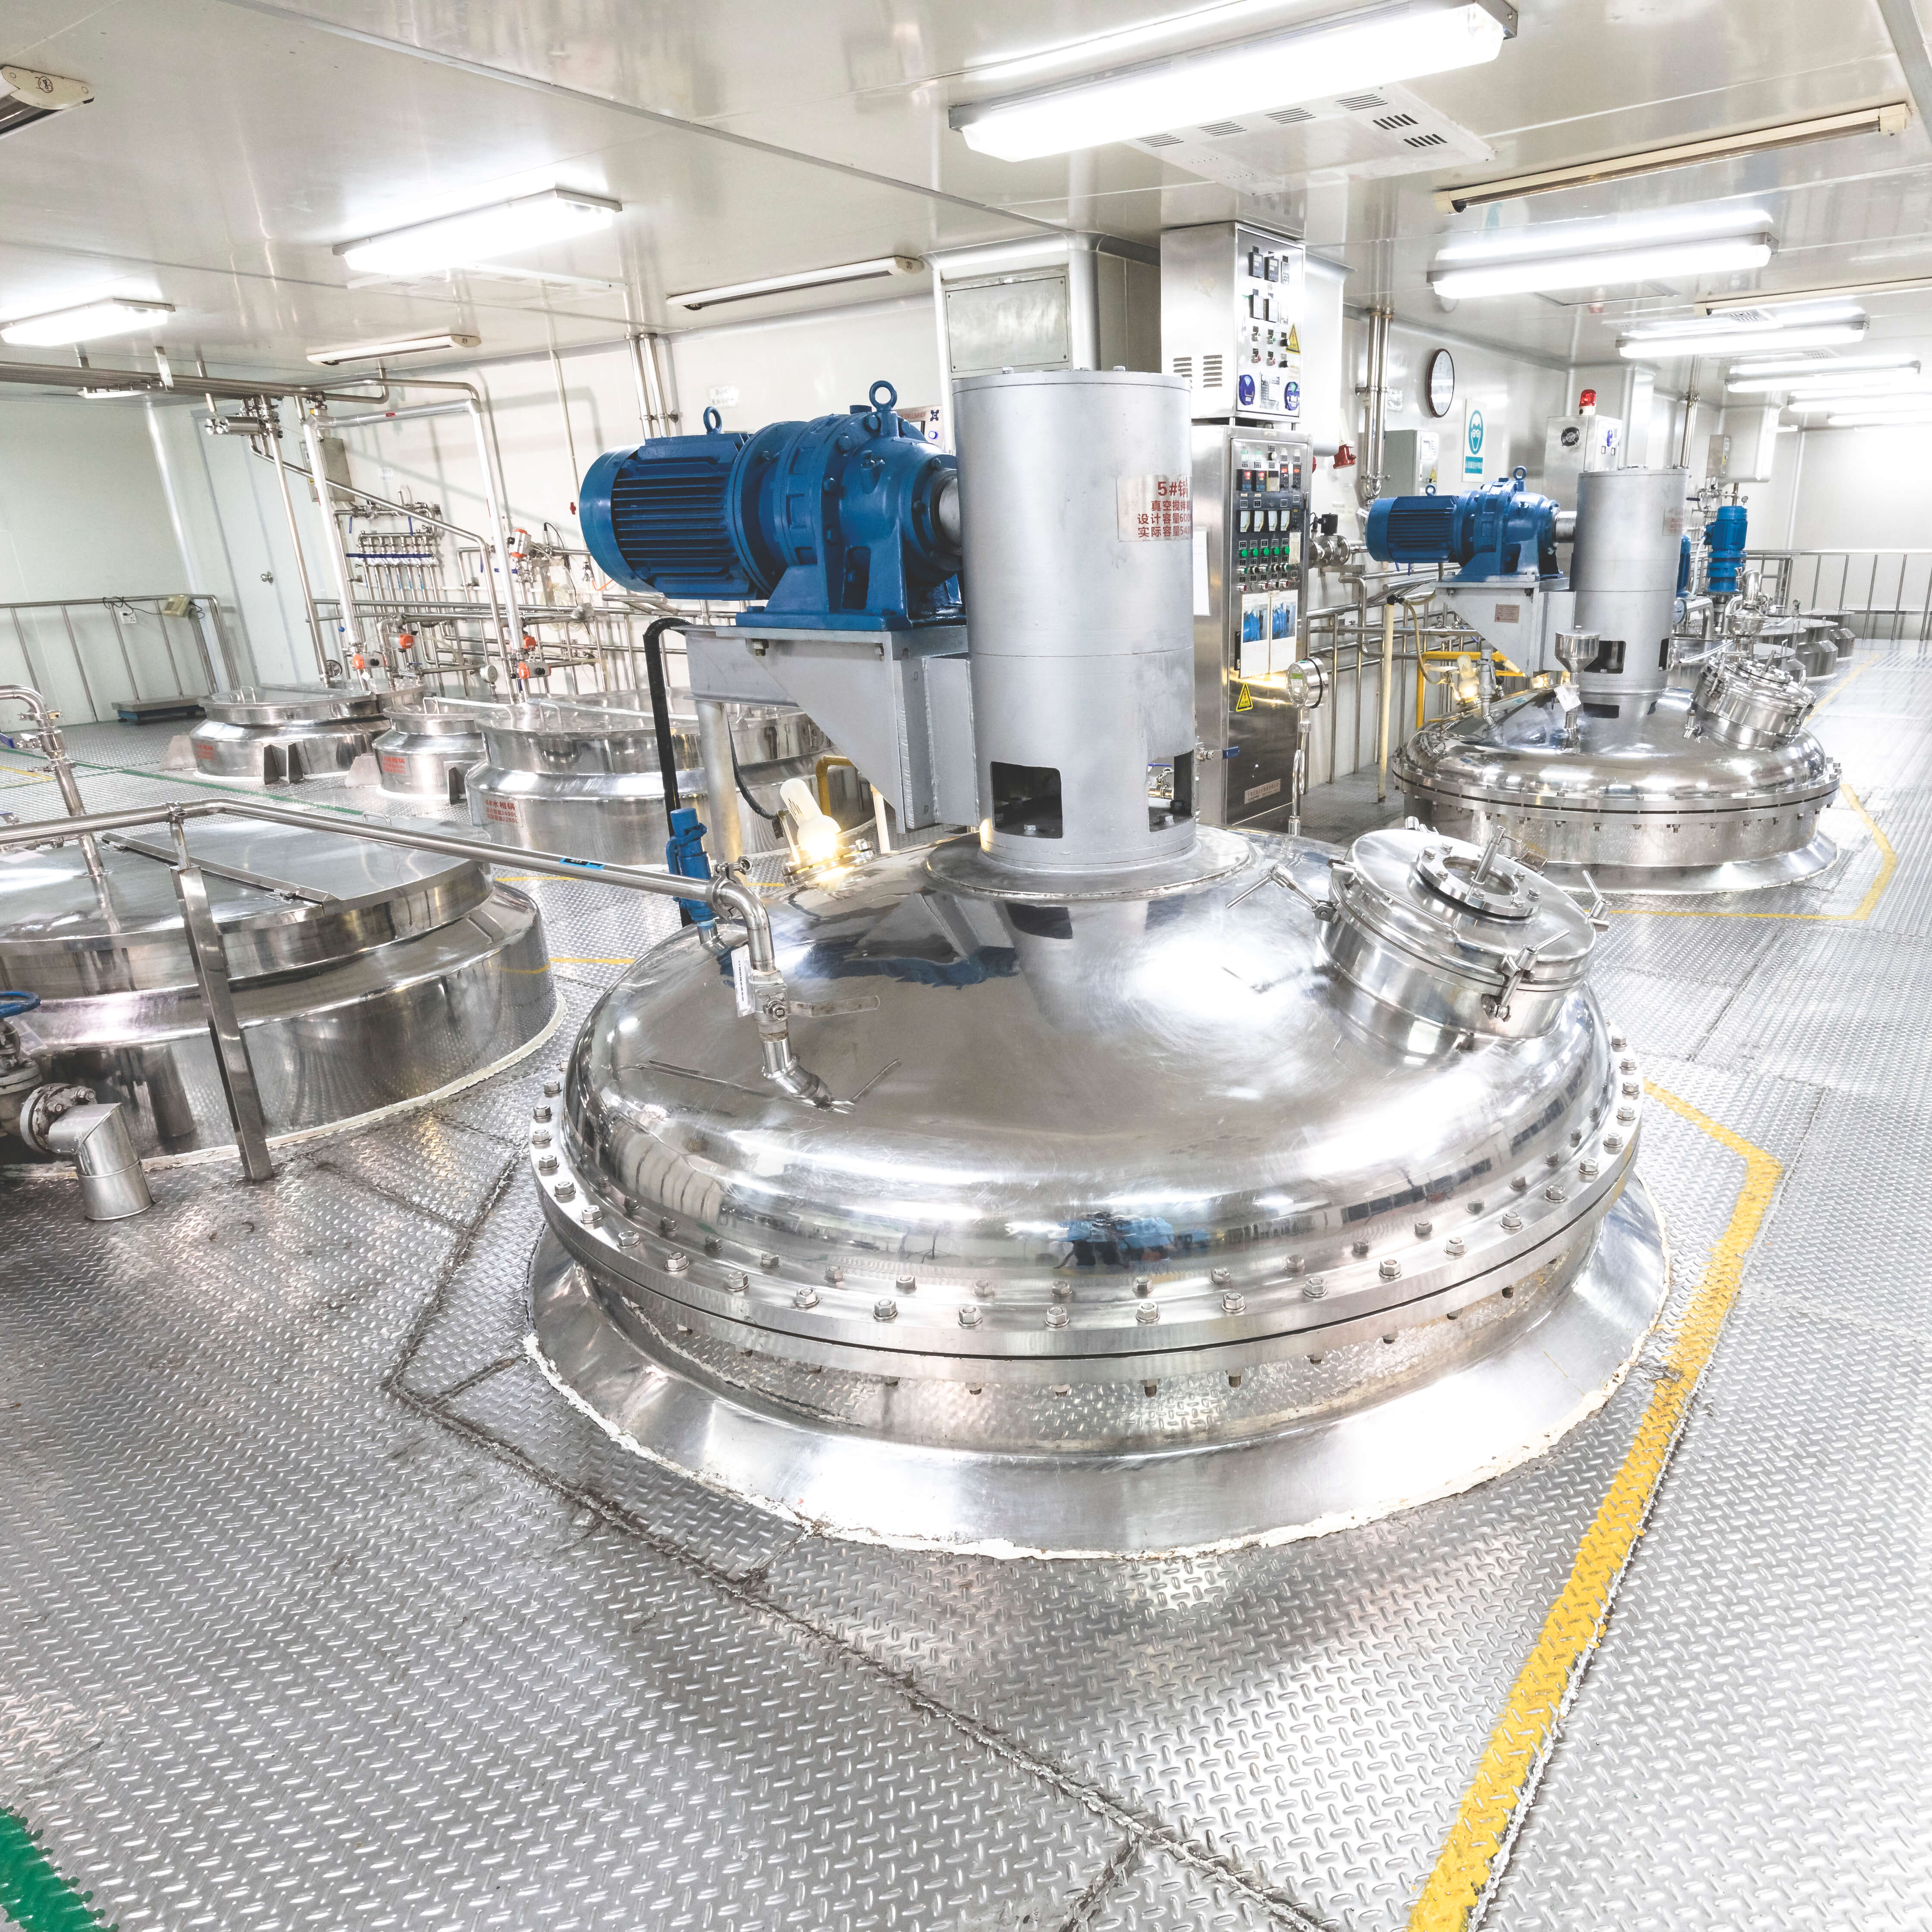 Global Cosmetics Cosmetic Manufacturer Production Process - Production Process